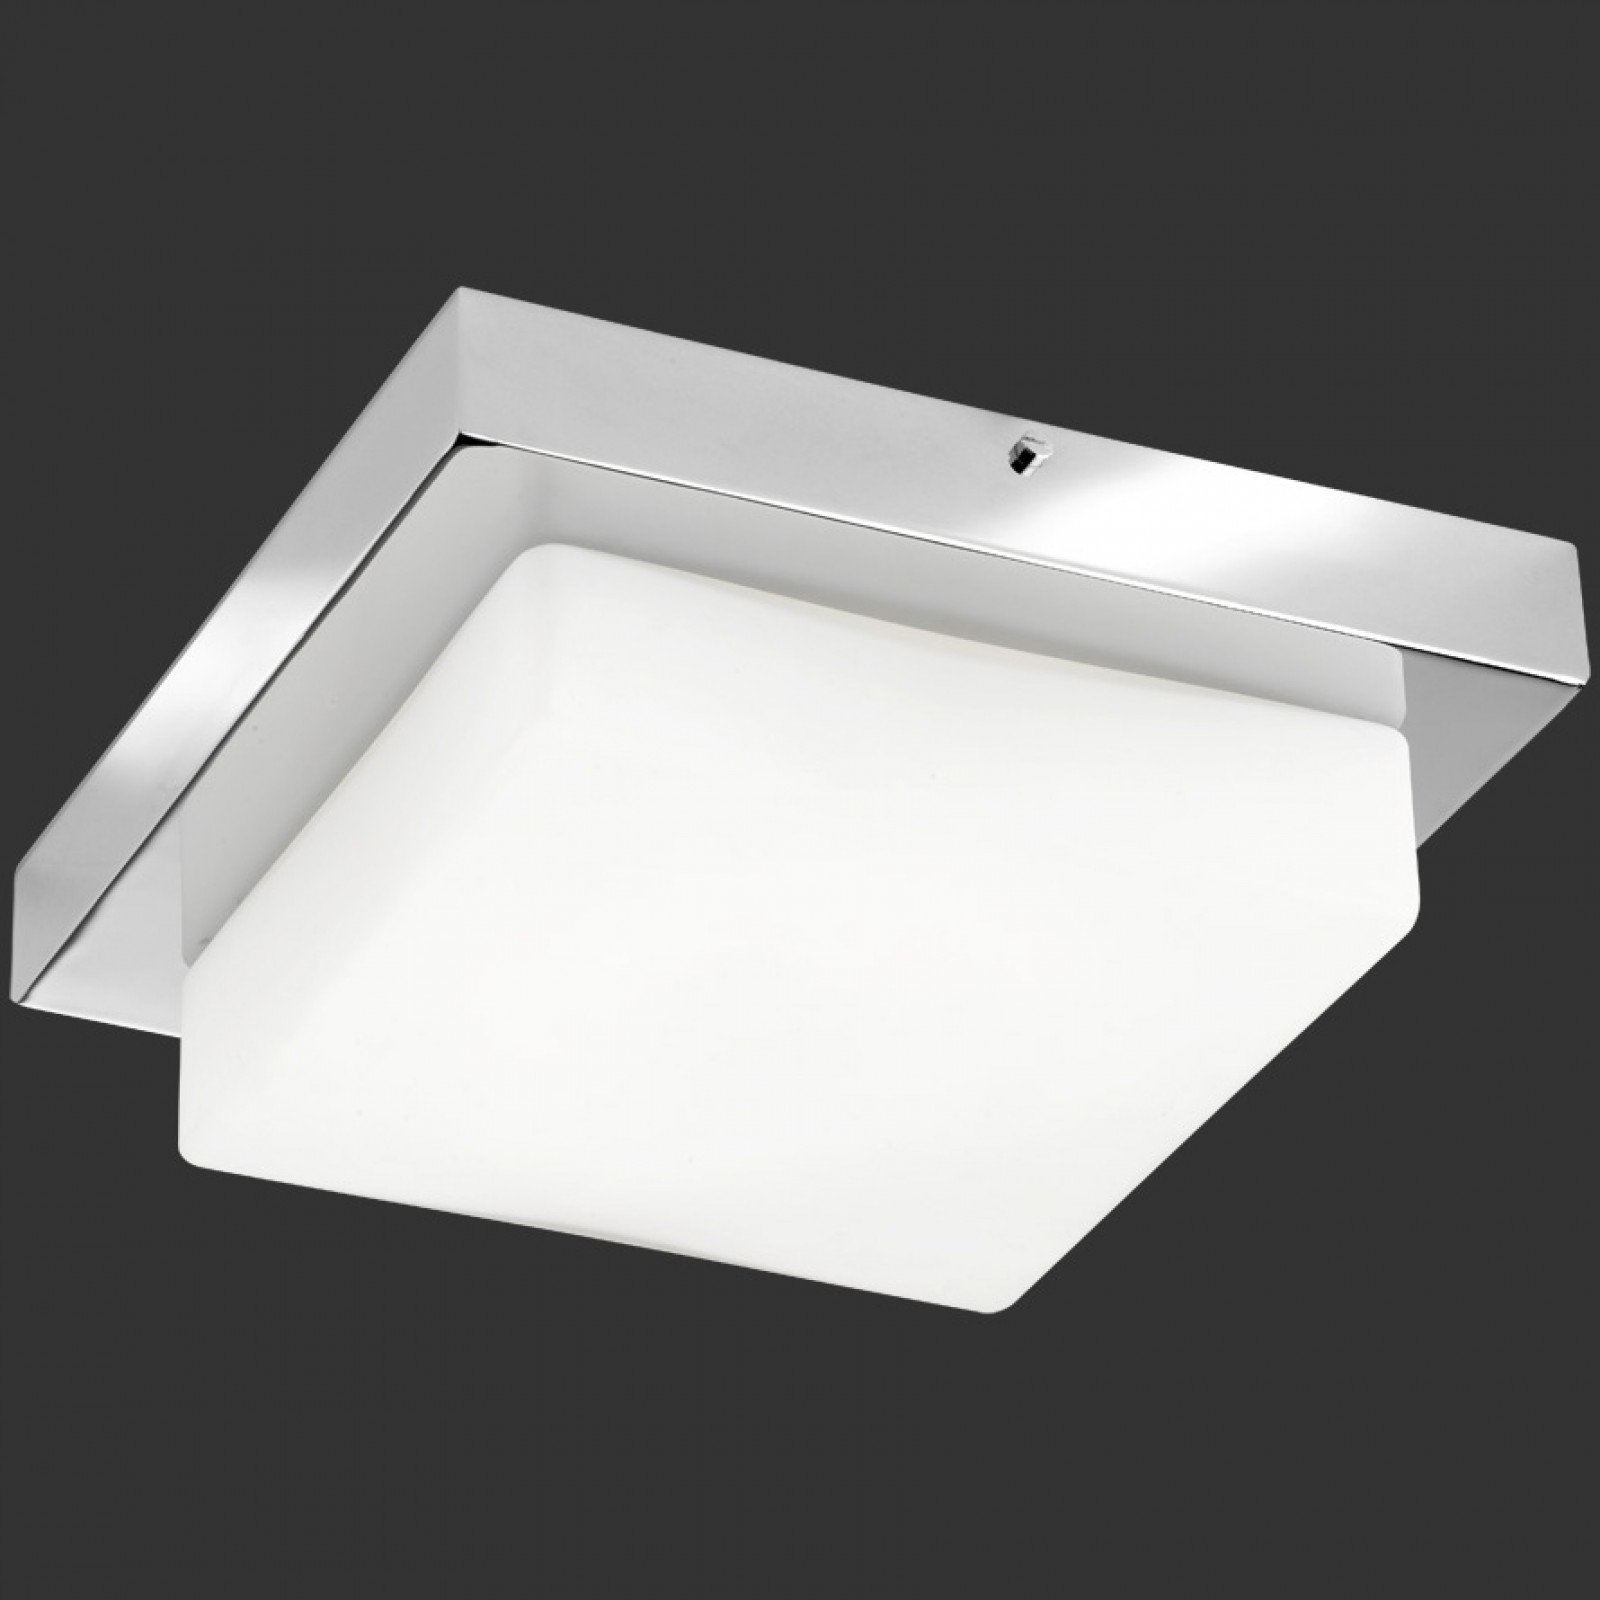 LED-kattovalaisin H2O 6806 260x260x86 mm IP44 kromi/opaalilasi